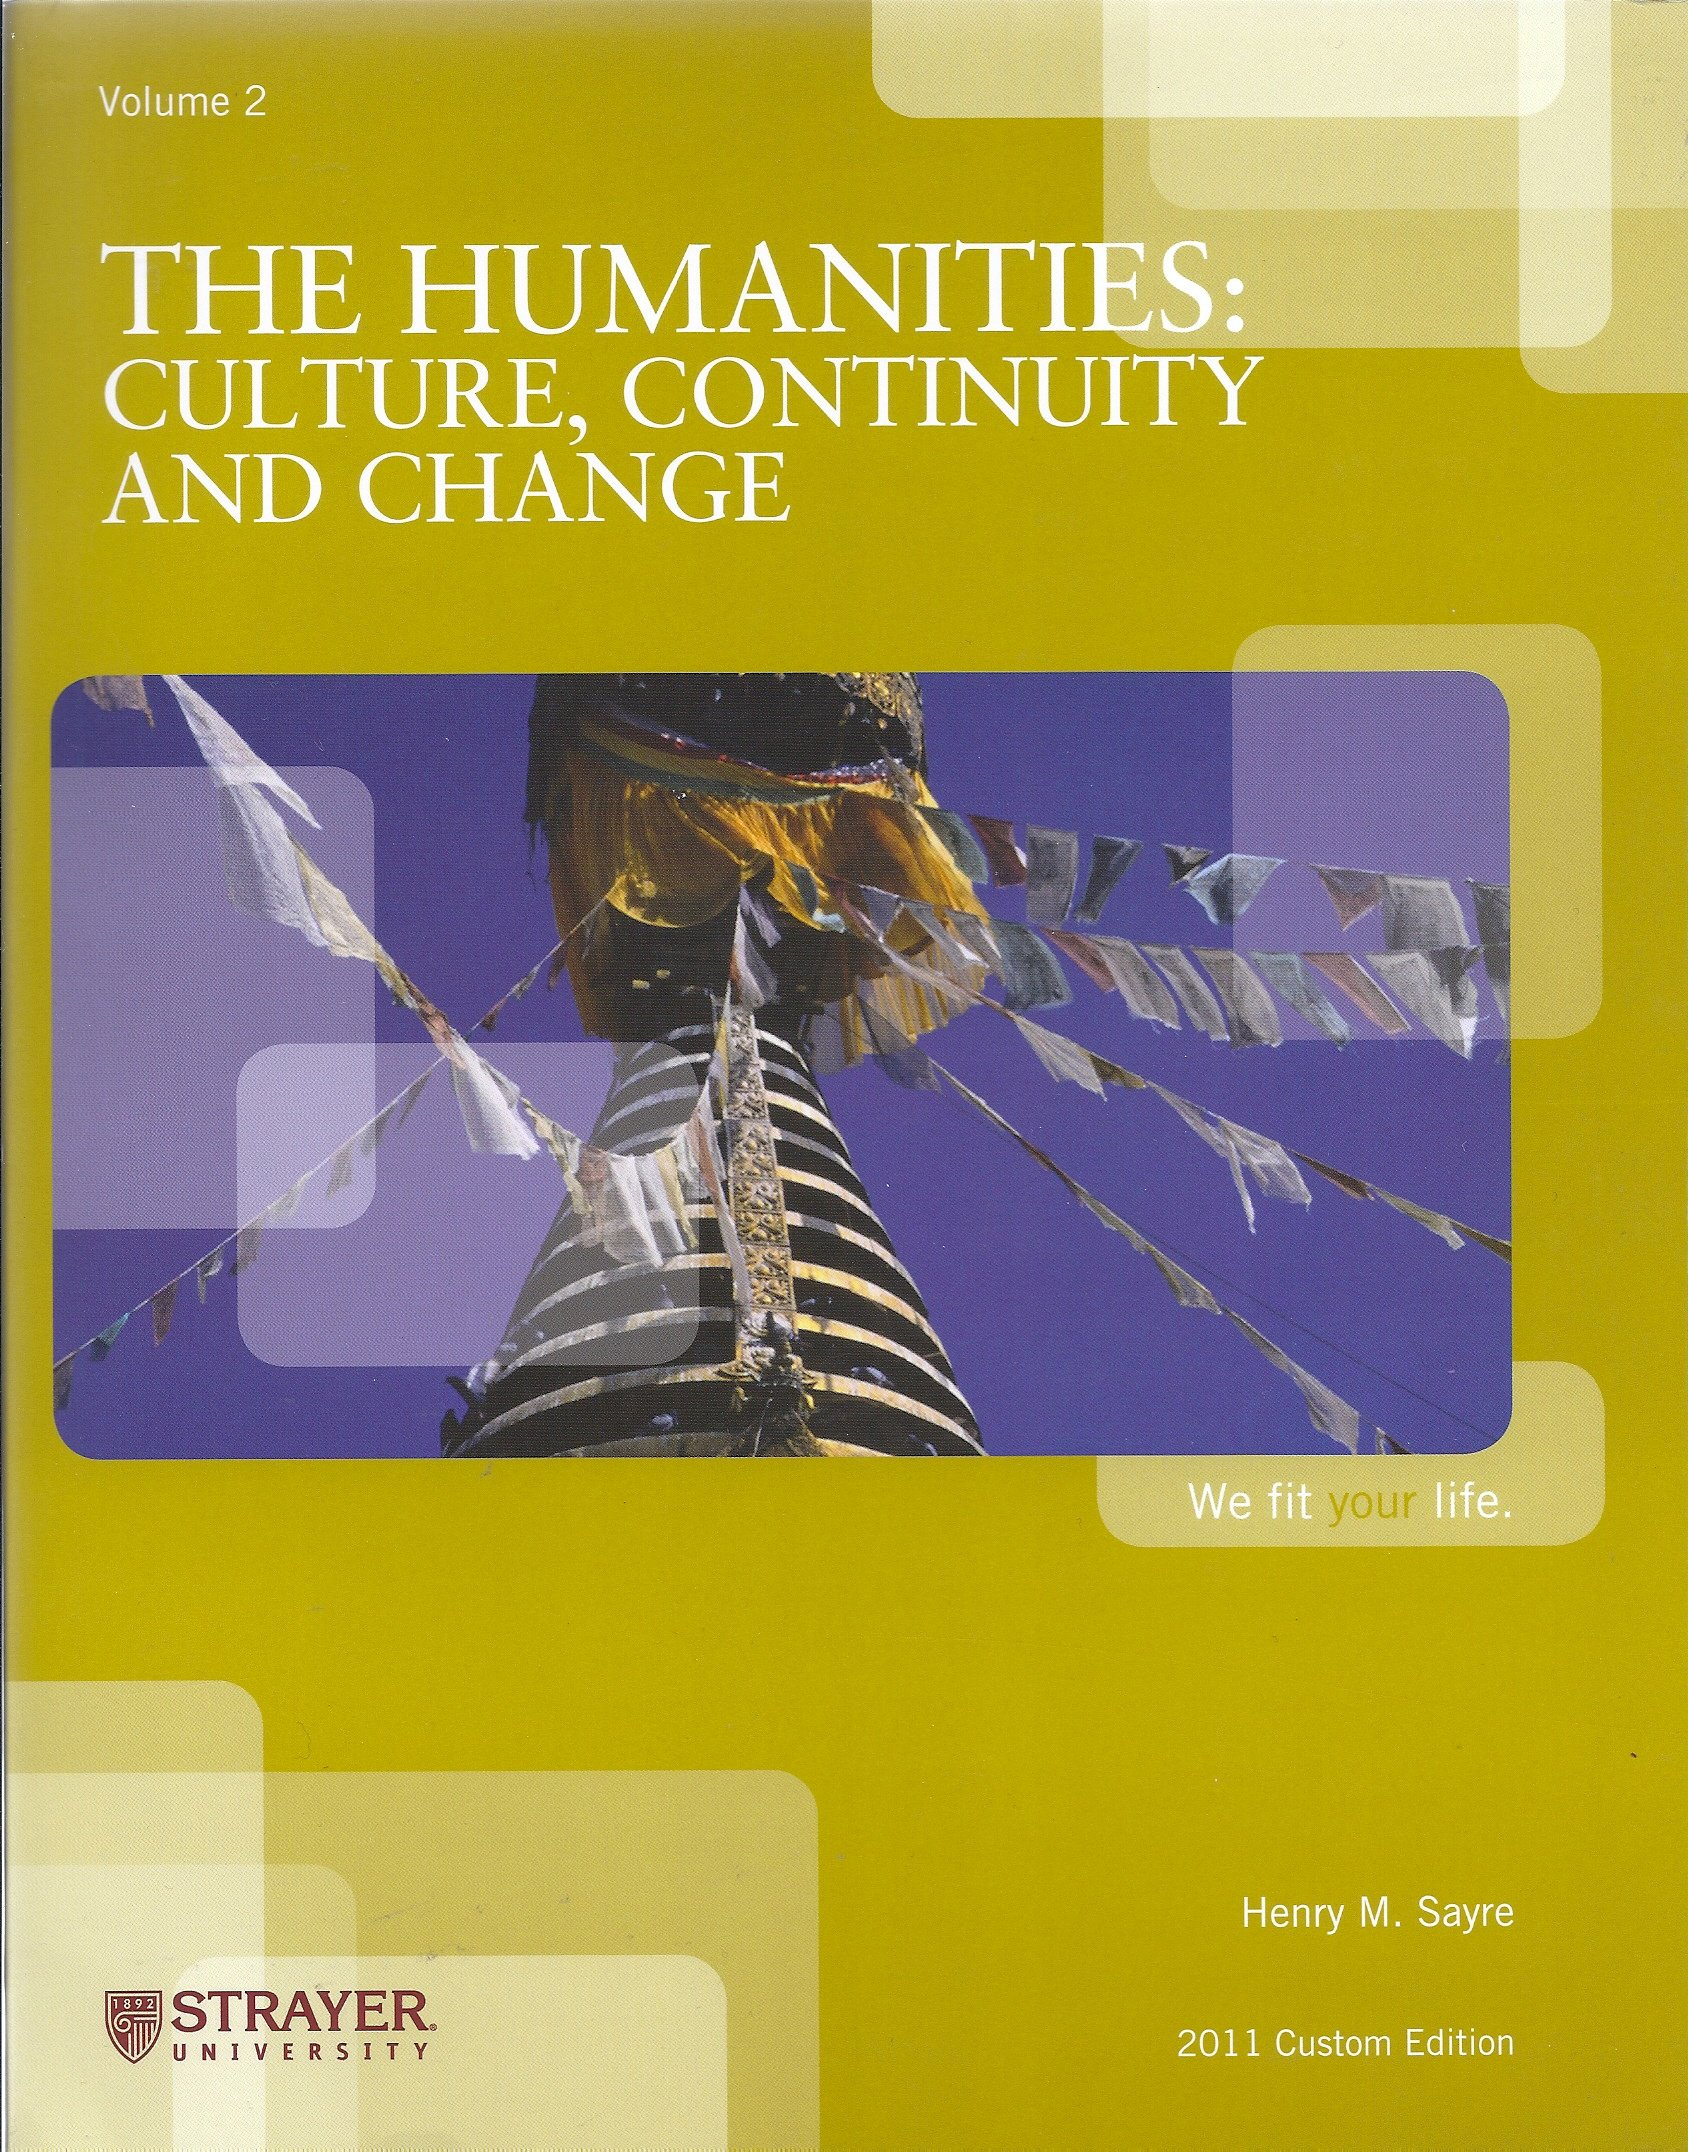 The Humanities: Culture, Continuity and Change: Henry M. Sayre:  9780558964290: Amazon.com: Books